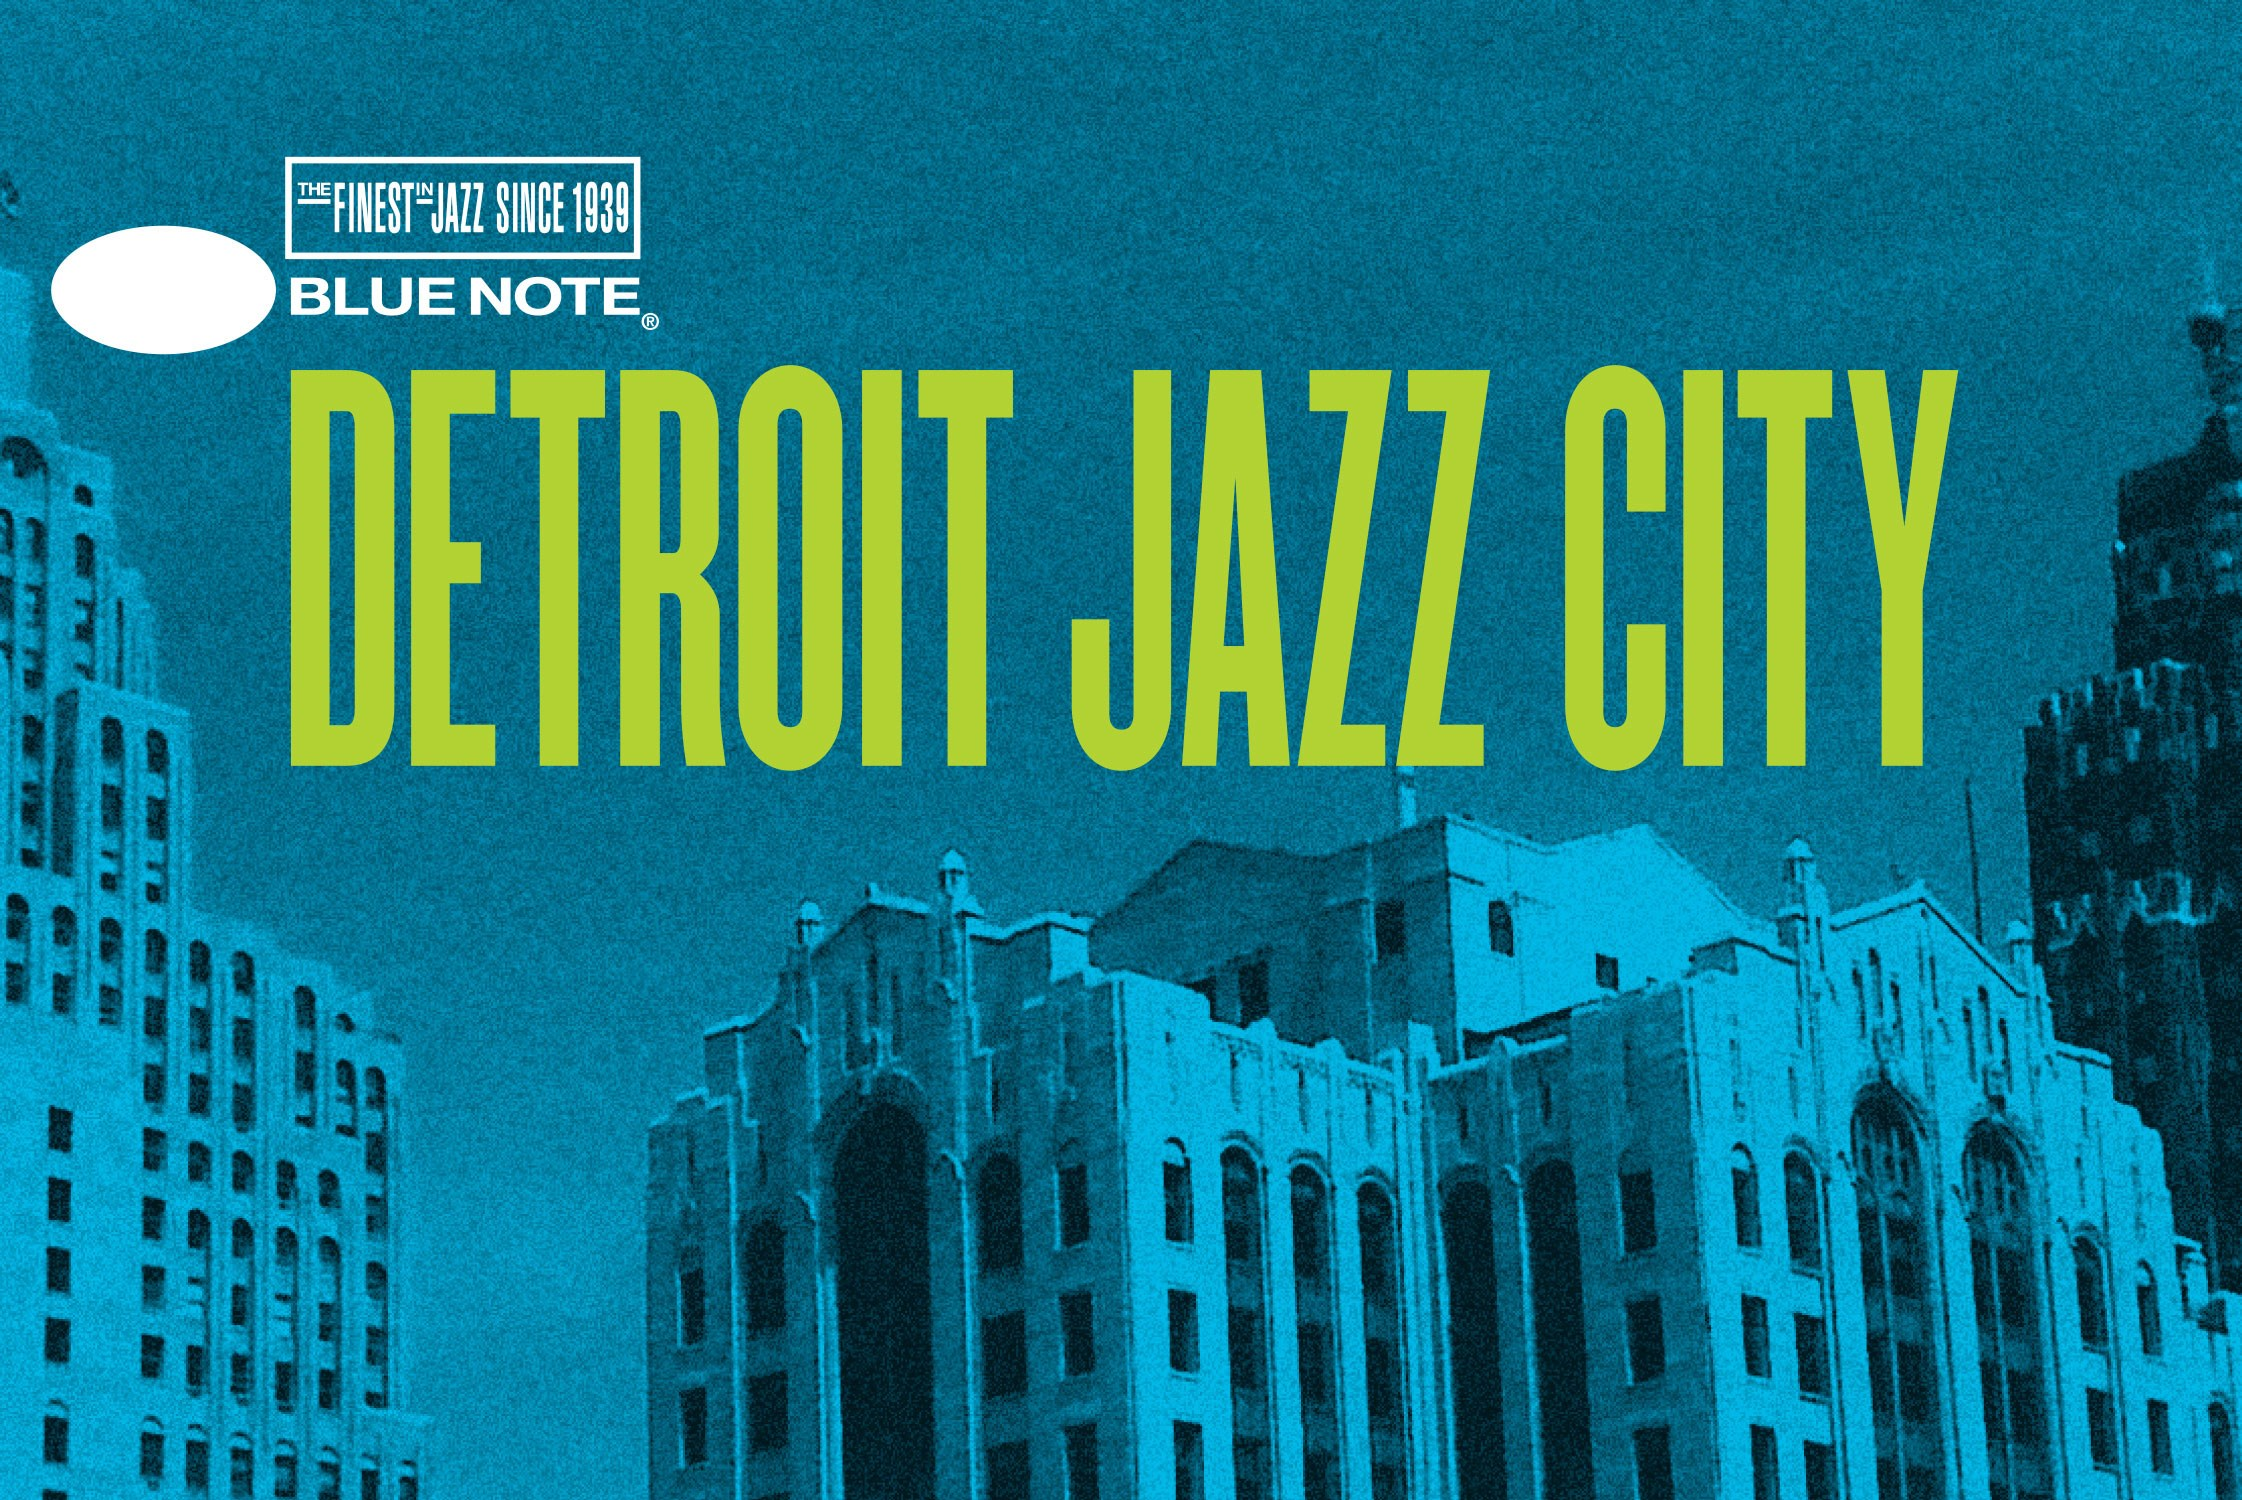 detroit_jazz_city_thumbnail.jpg